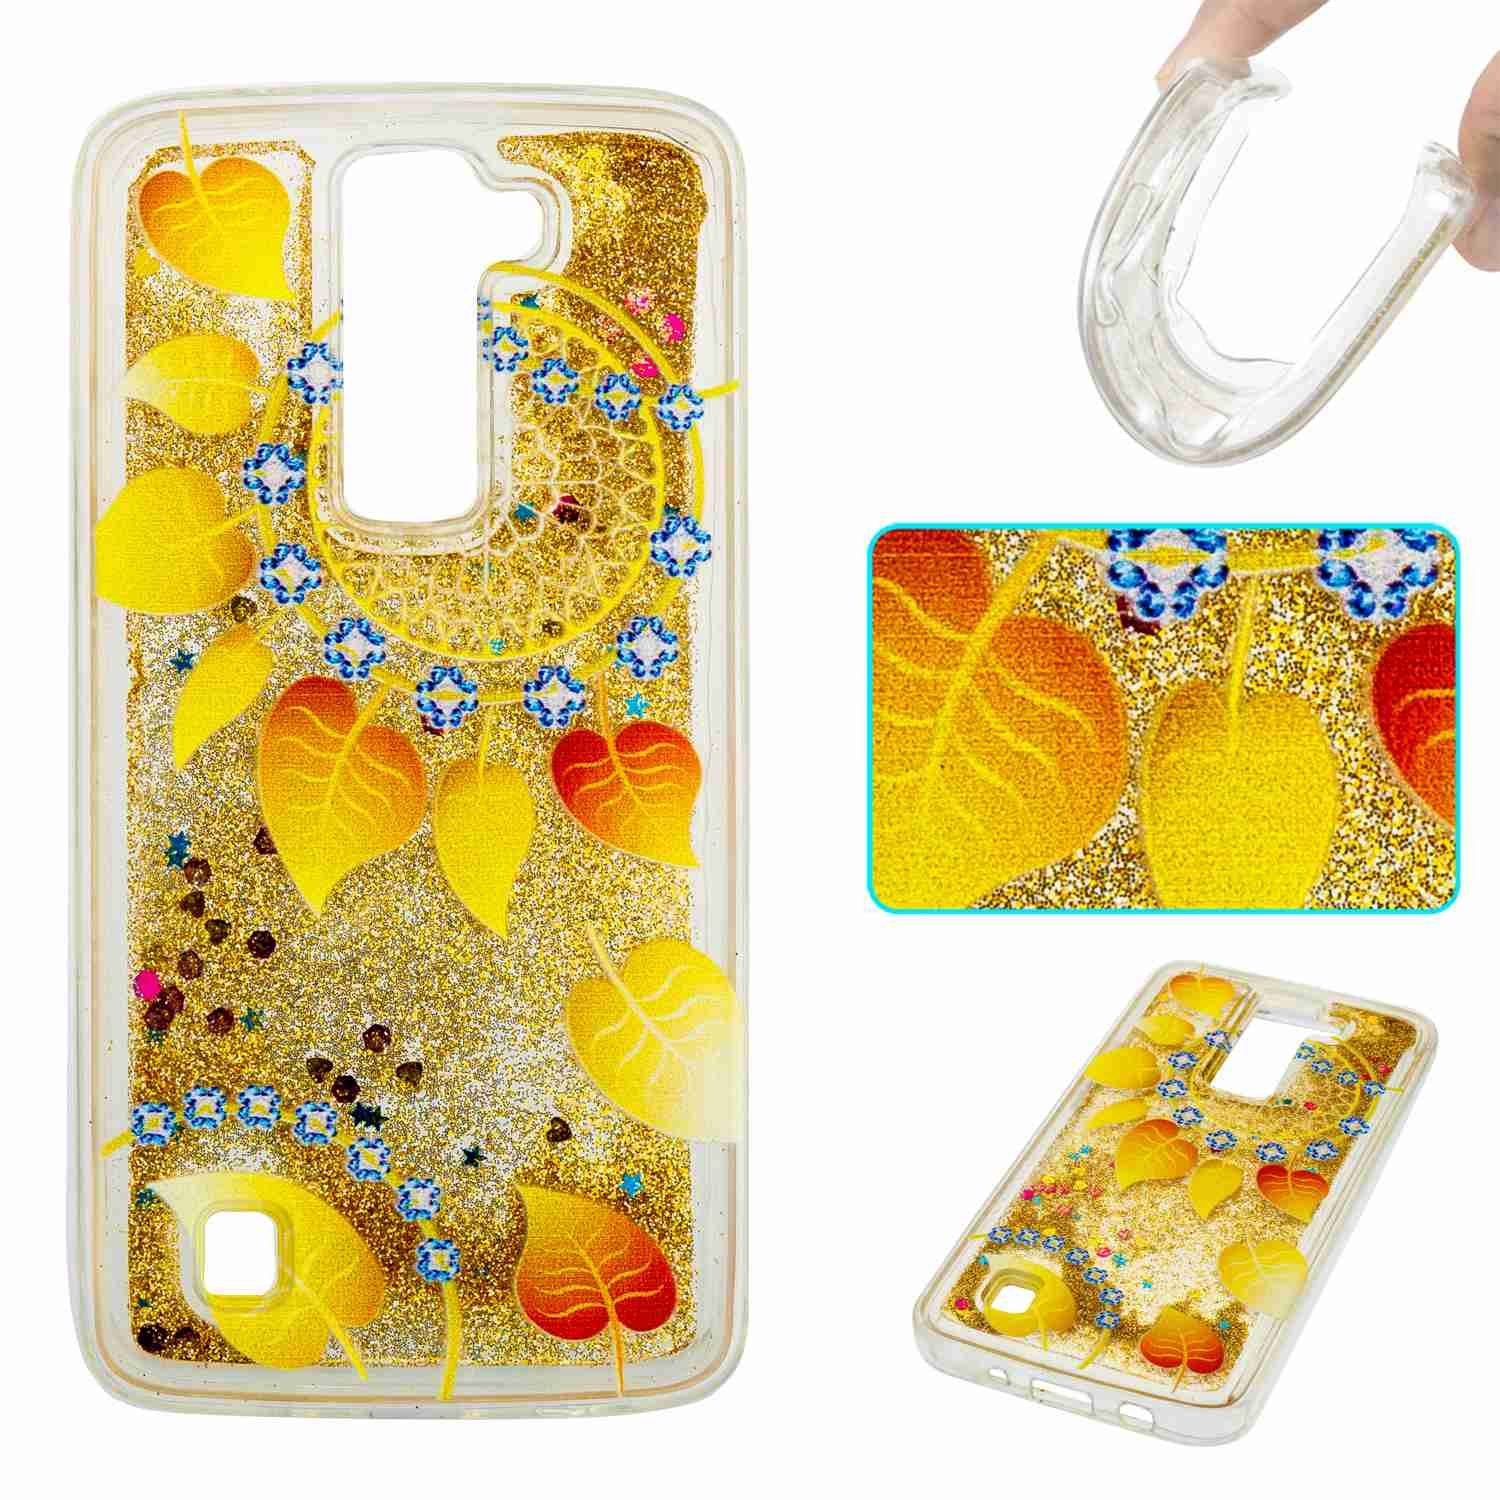 STENES LG K8 Case - 3D Creative Luxury Bling Glitter Sparkle Liquid Case Infused With Glitter and Stars Moving Quicksand Soft Case For LG Phoenix 2 /Escape 3 /LG K8 (2016) - Gold Flowers Leaf